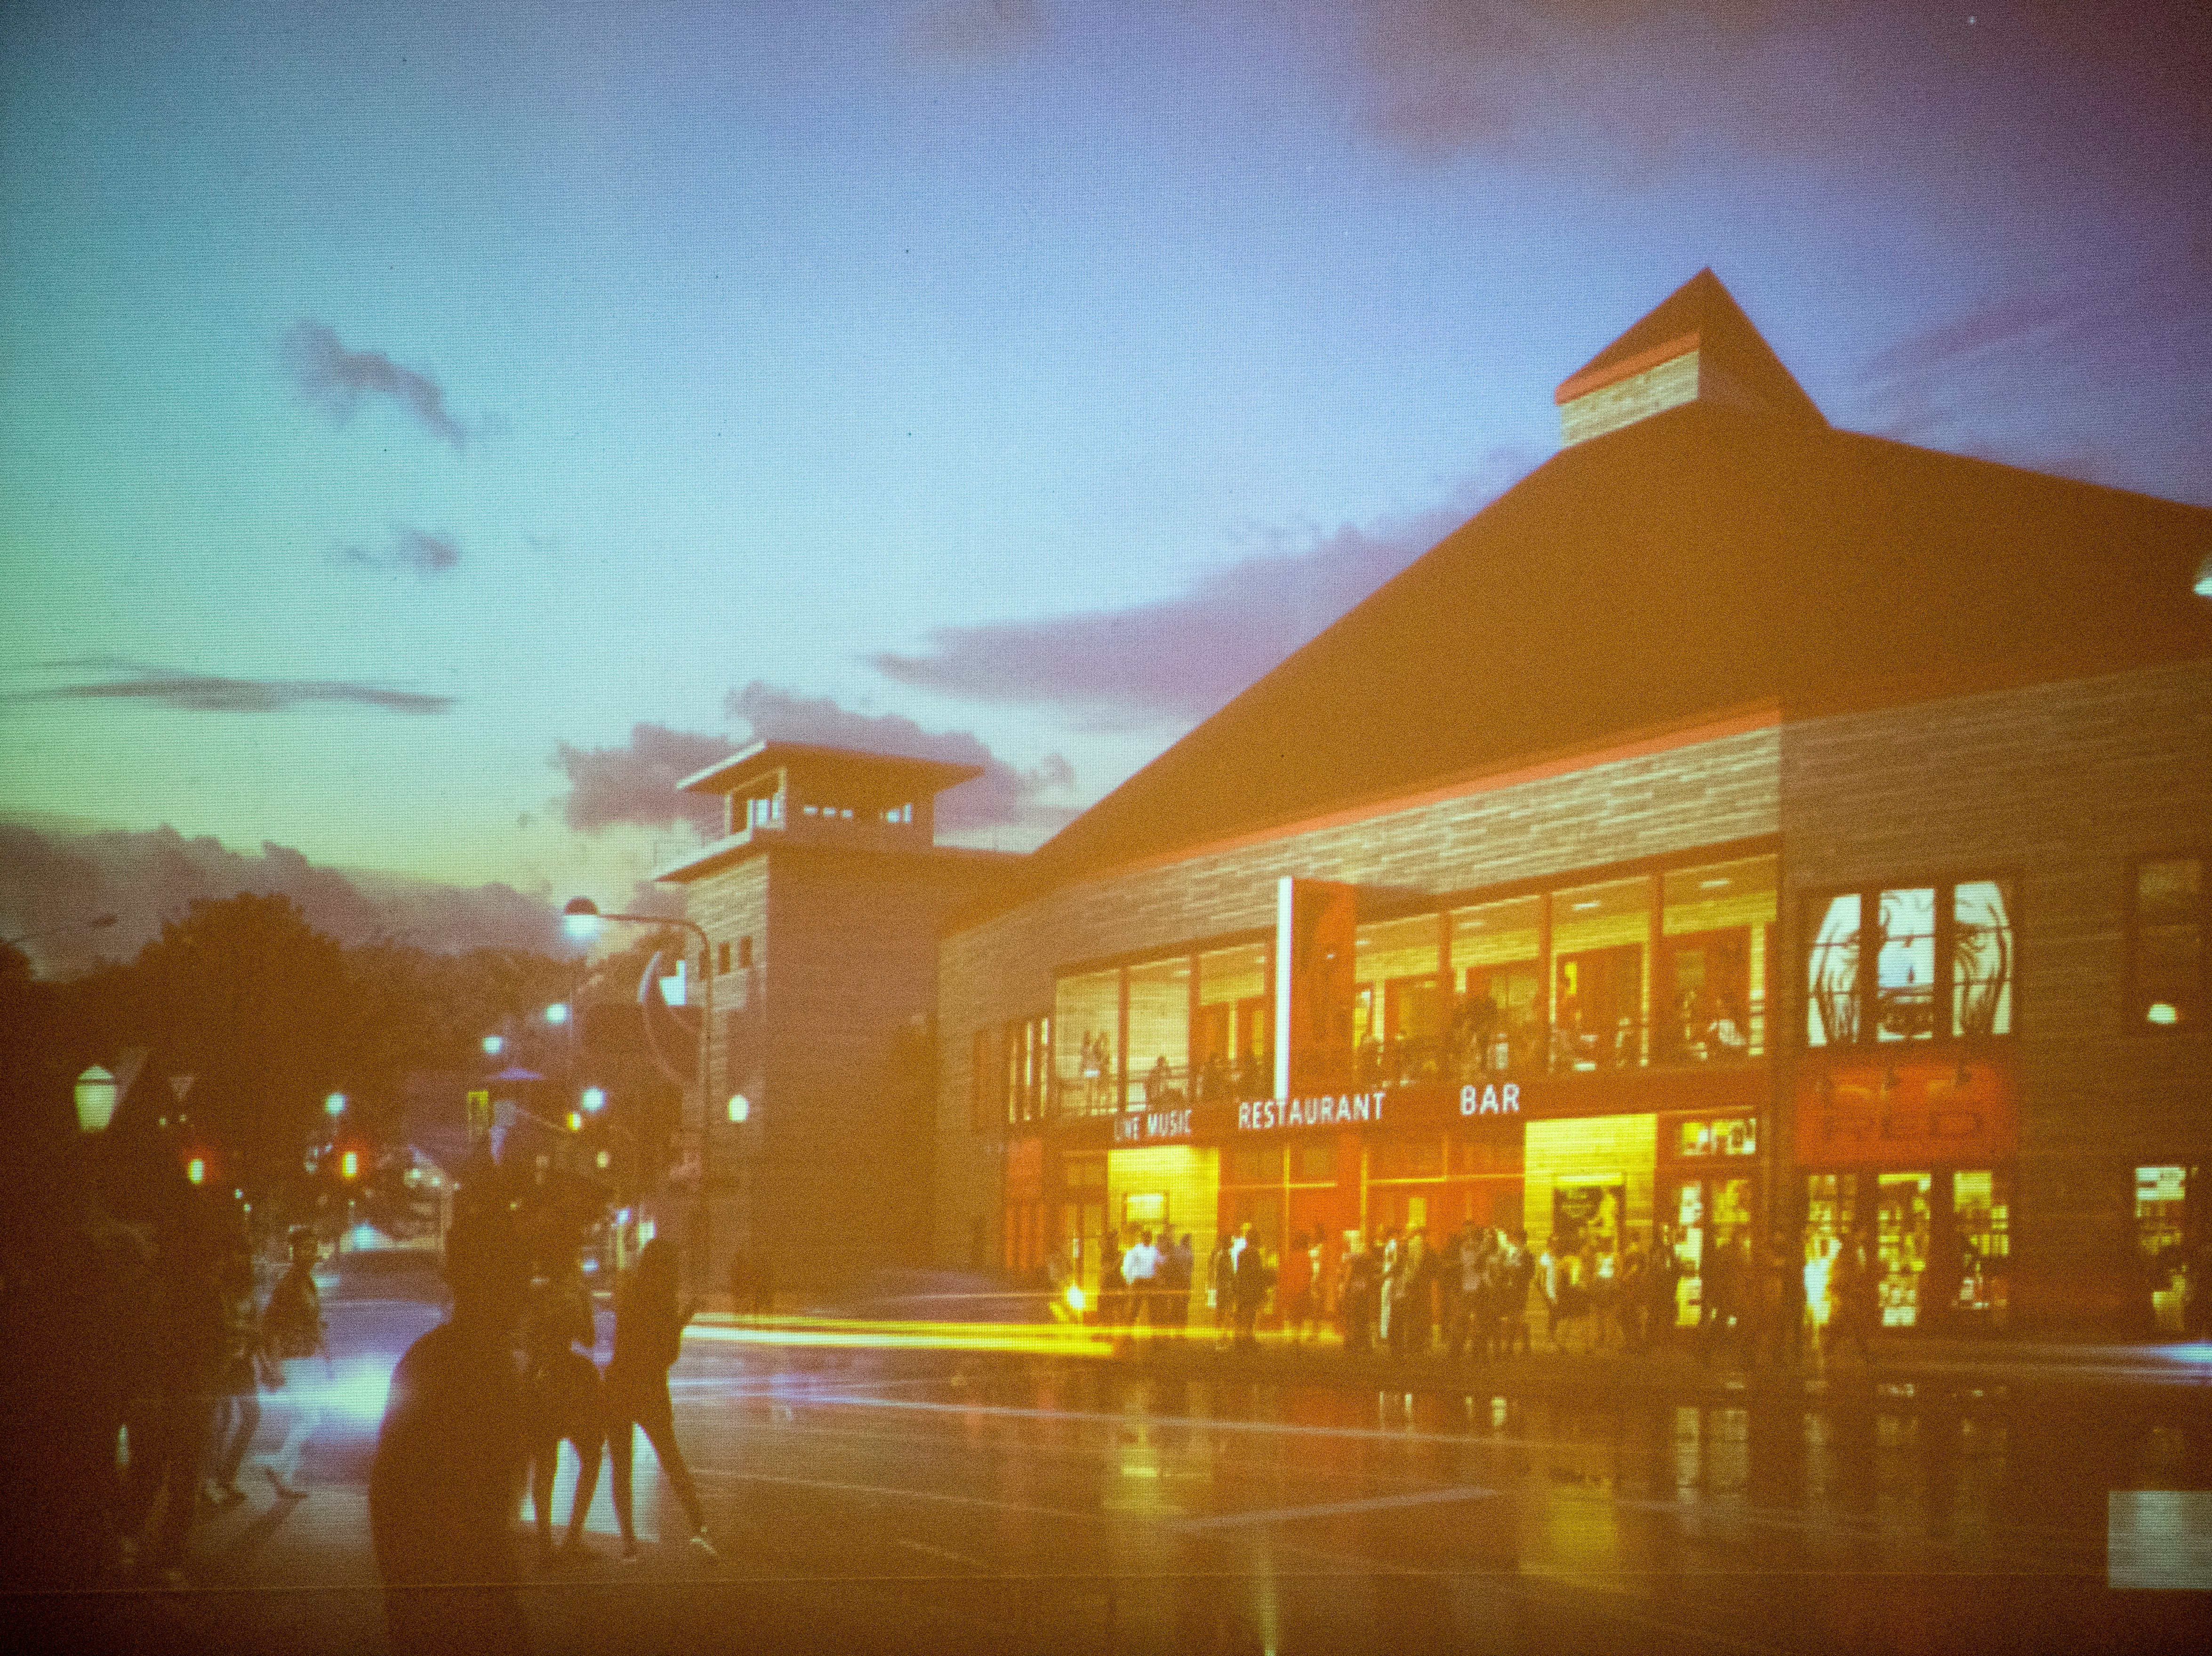 An after photo of the venue during an announcement ceremony for Ole Red Gatlinburg in Gatlinburg, Tennessee on Tuesday, September 18, 2018. The 13,500 square-foot entertainment venue with a two-story bar, restaurant and performance space with space for 325 patrons is slated to open spring 2019.